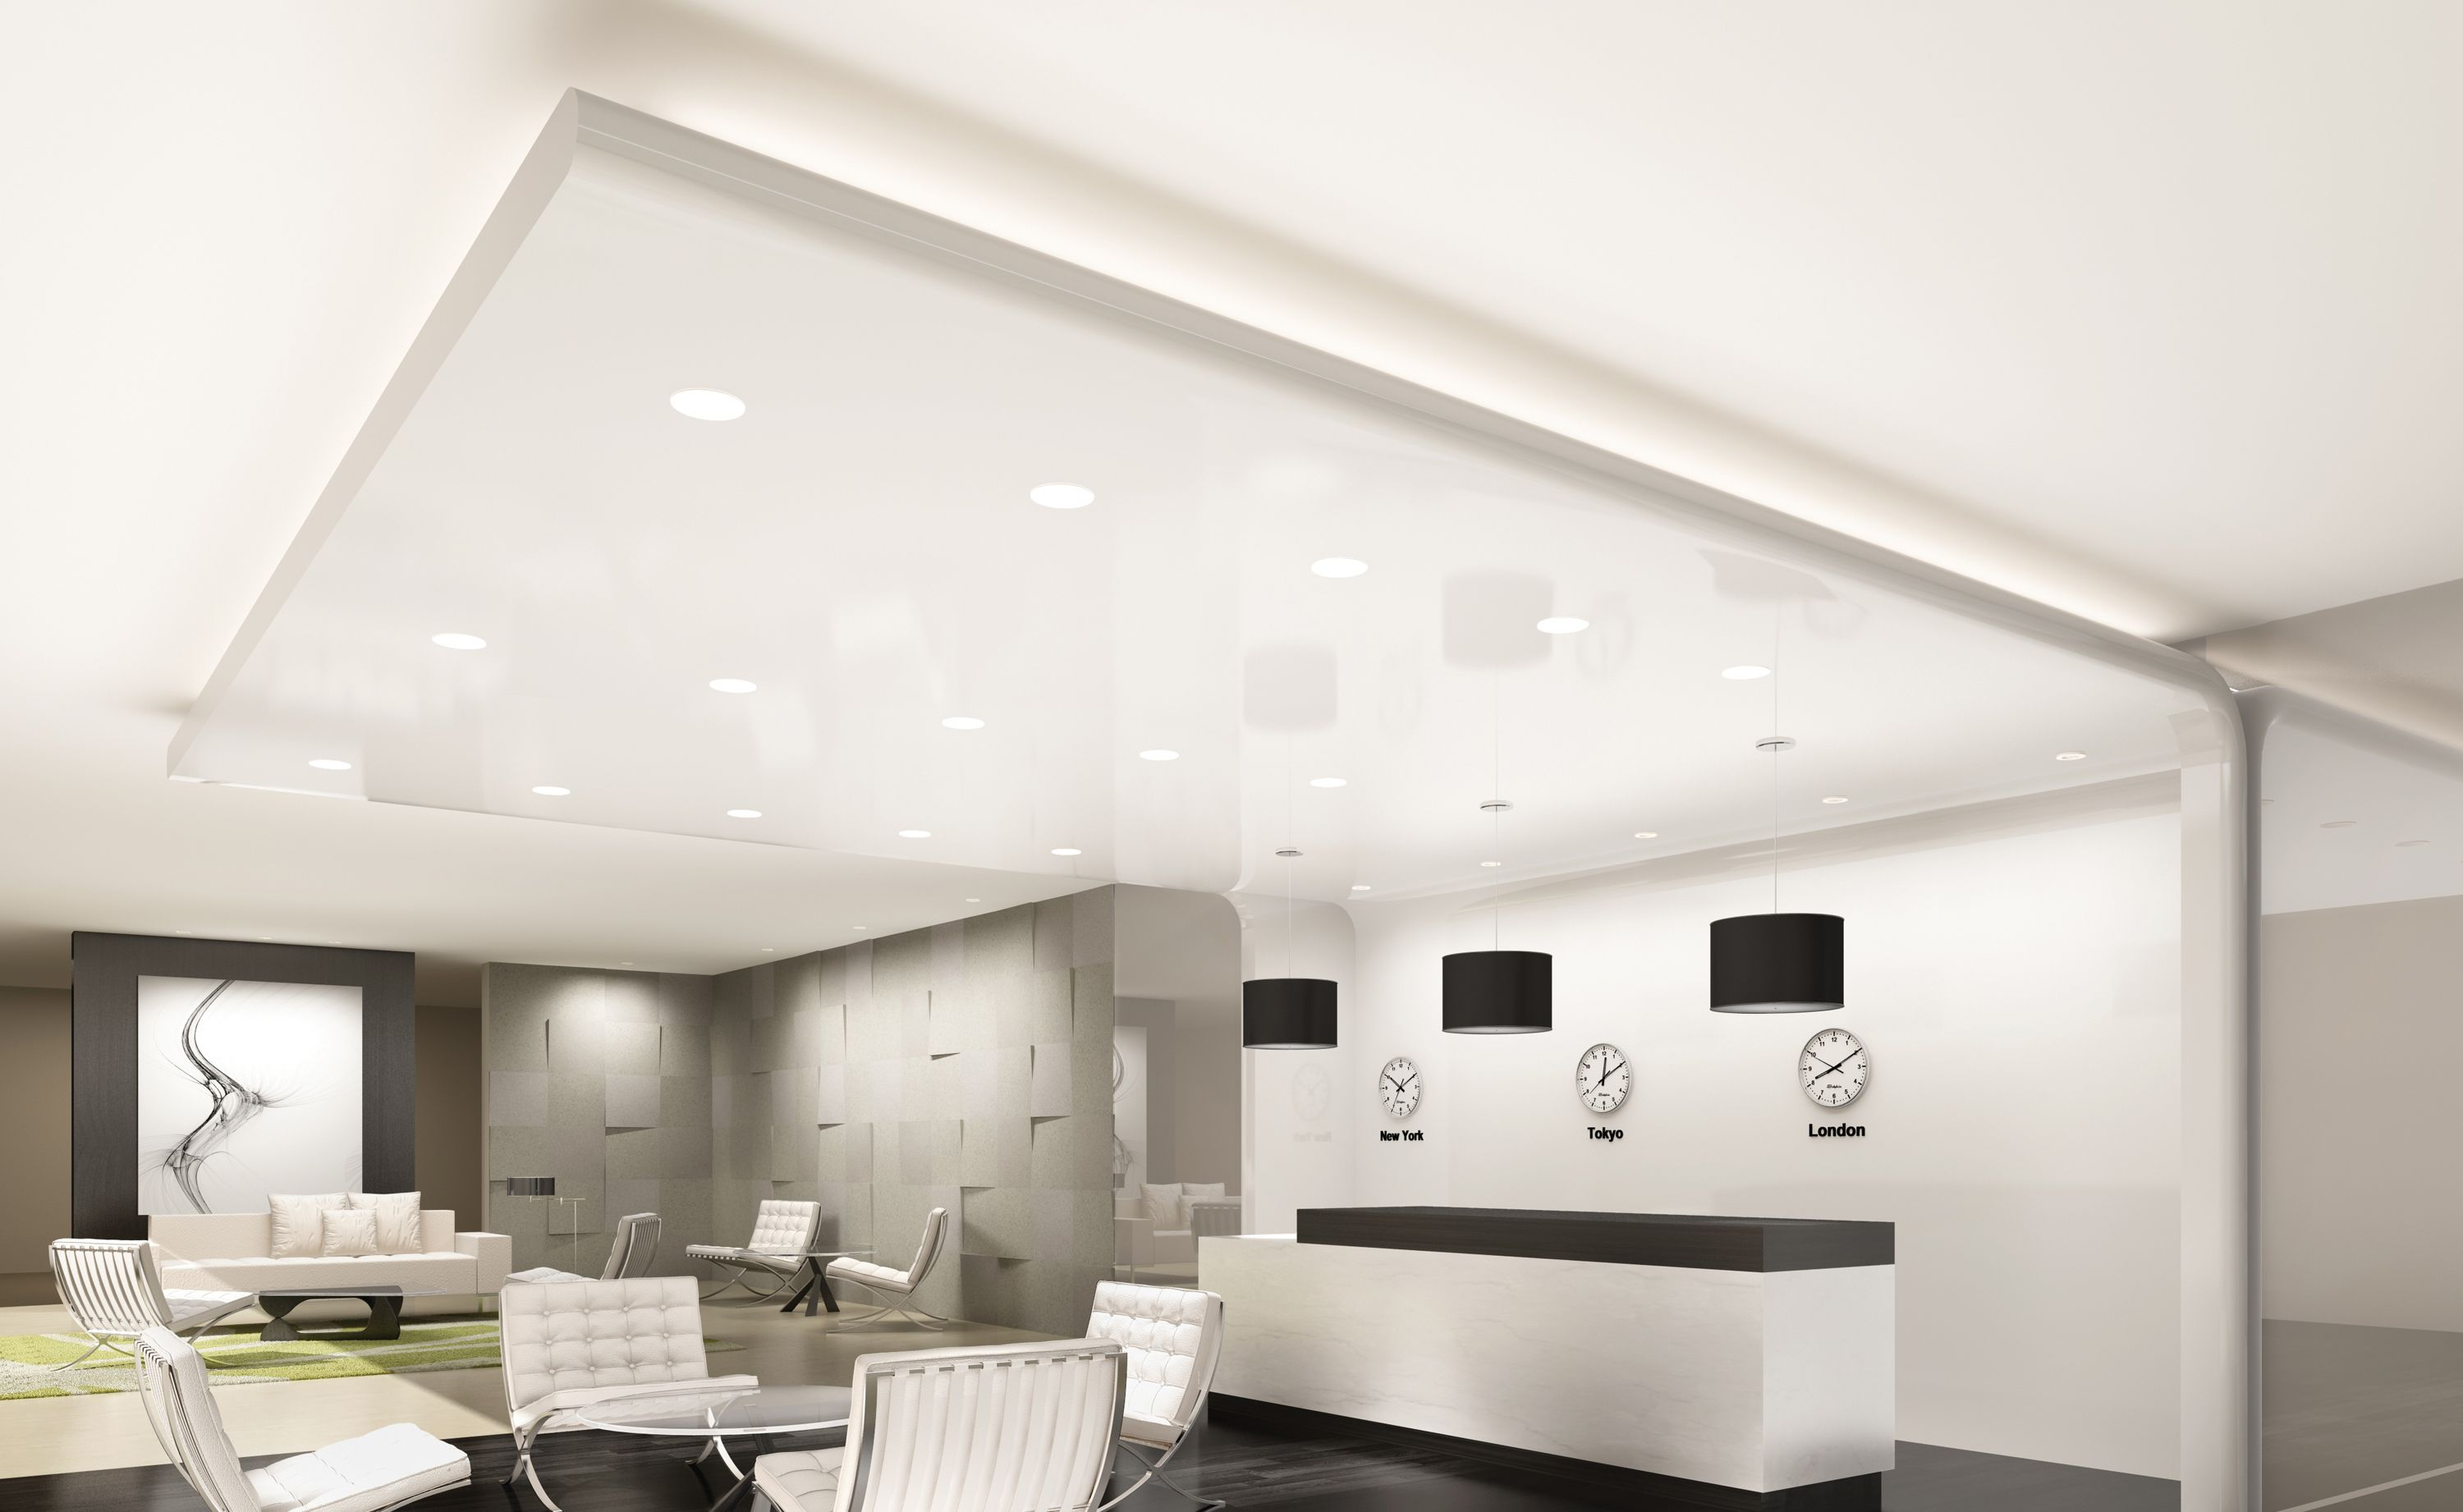 Top 10 modern recessed lights lights and modern top 10 modern recessed lights ylighting aloadofball Choice Image